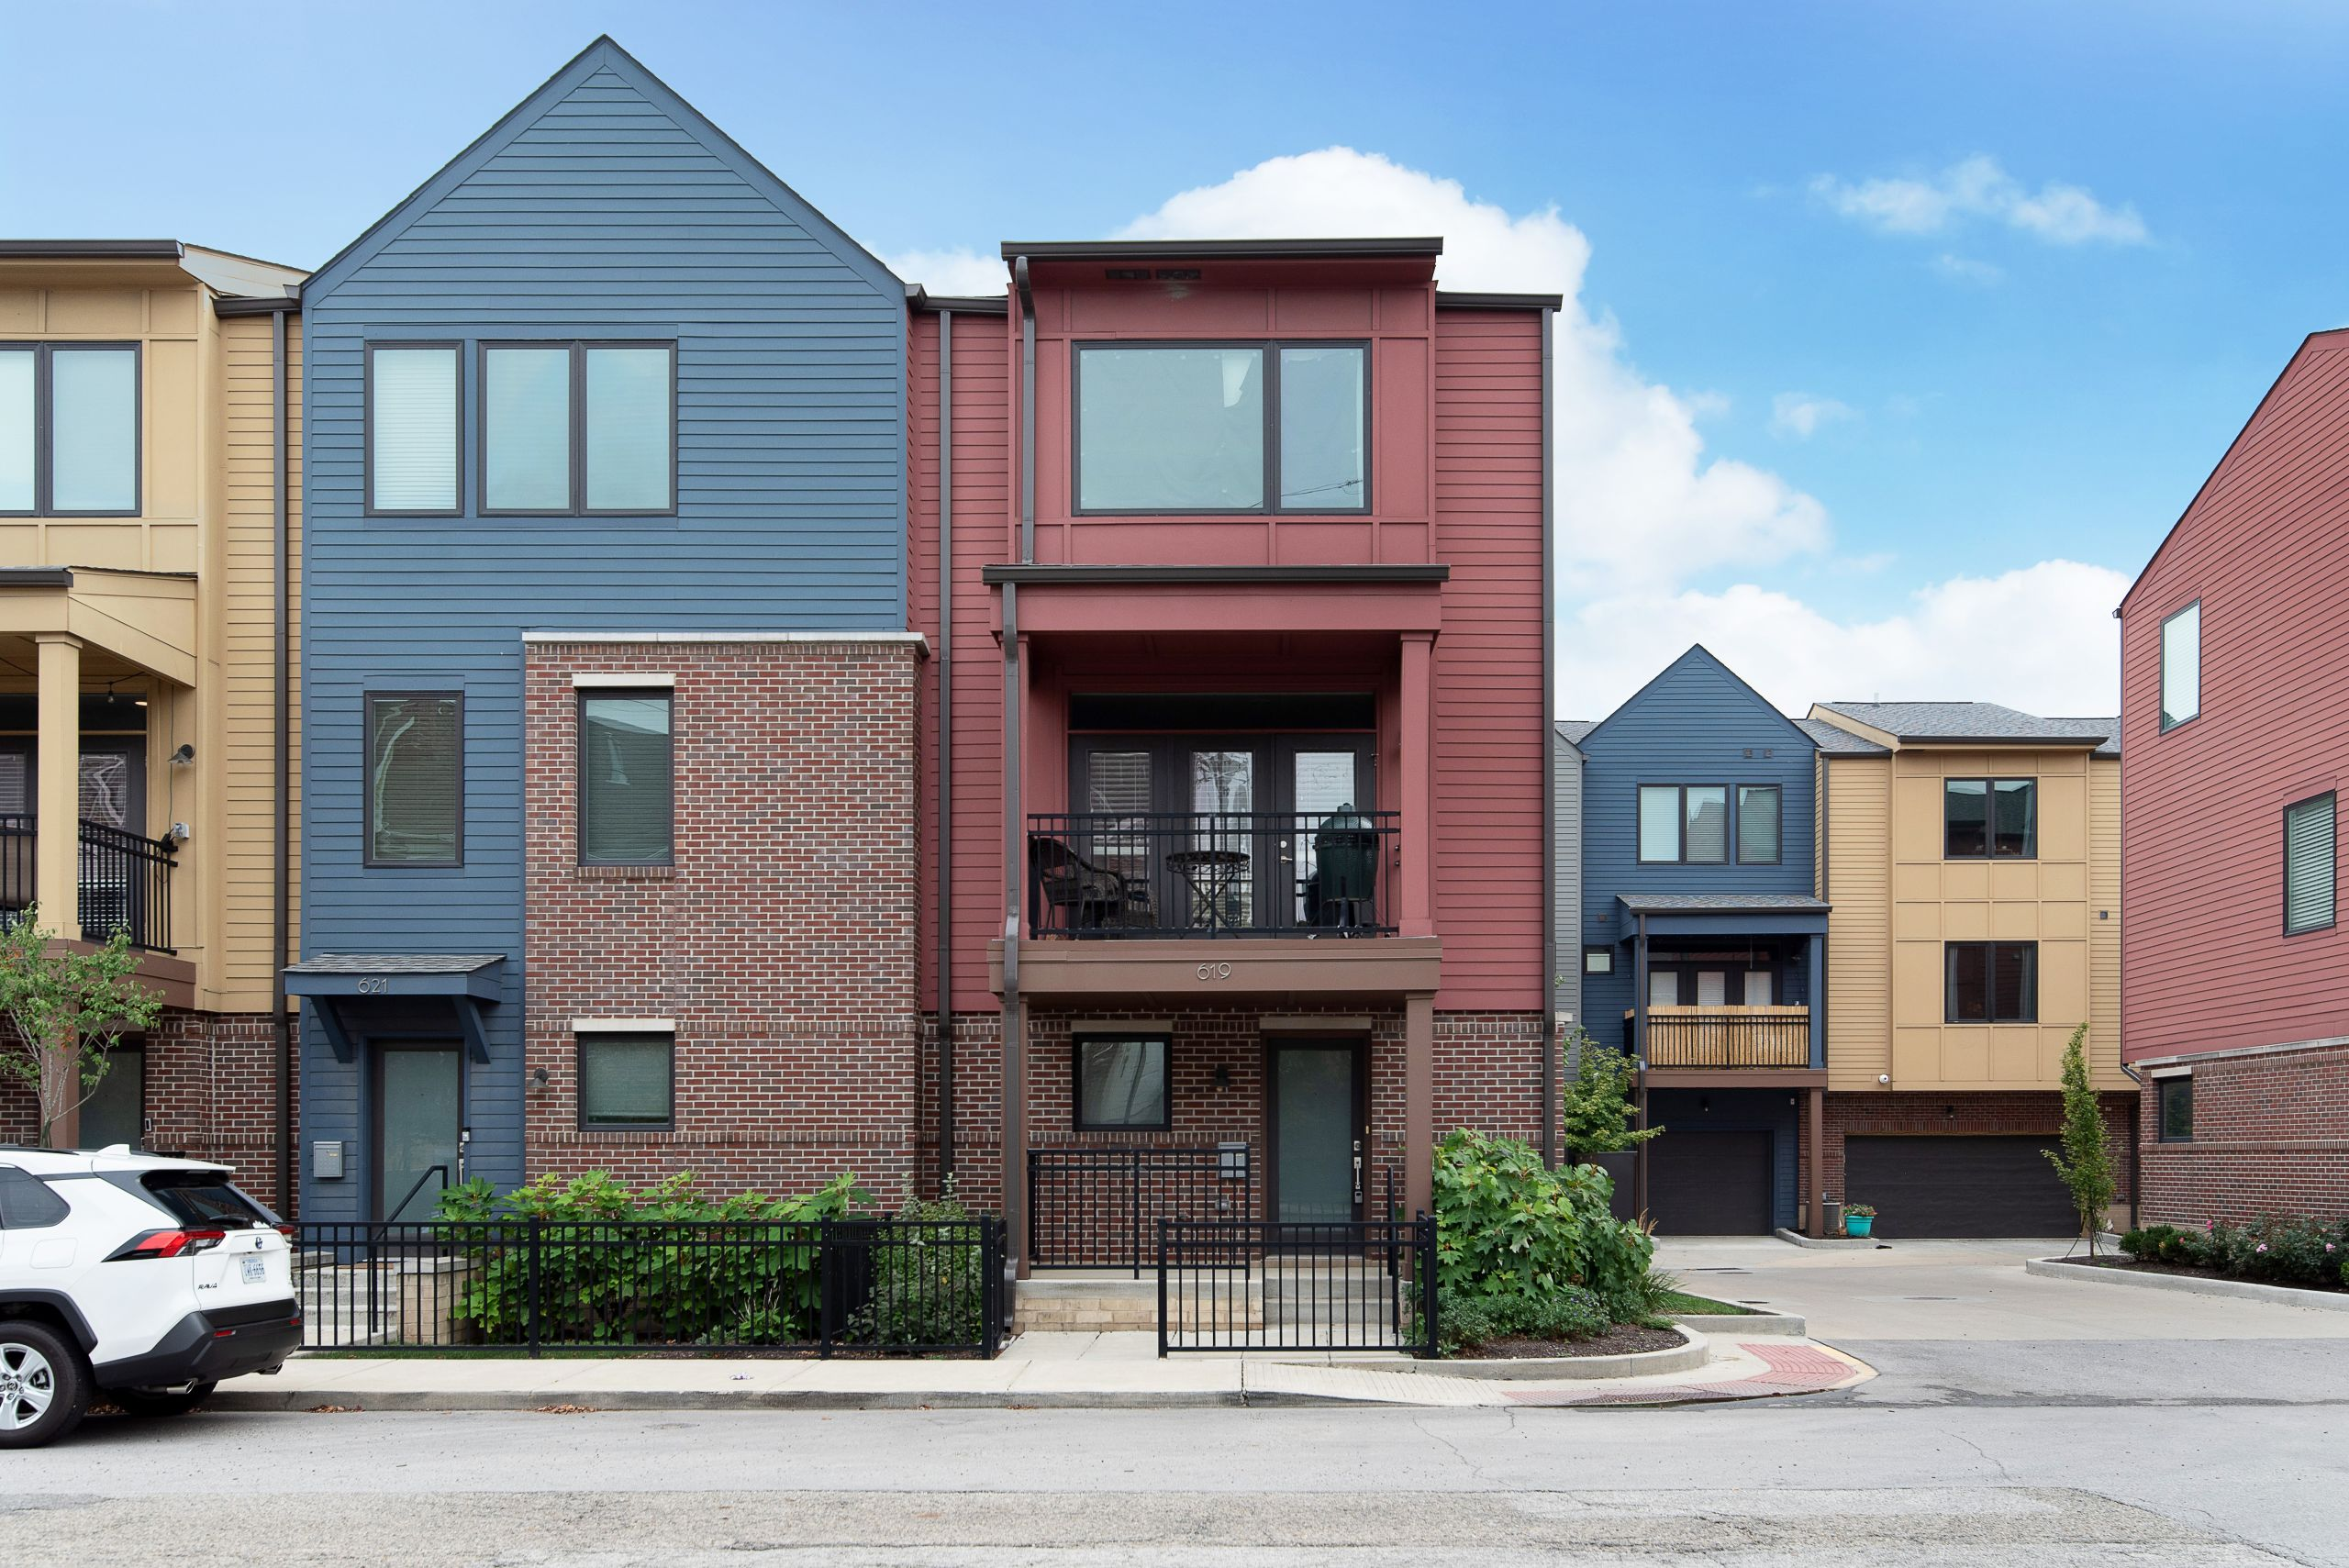 FOR SALE IN DOWNTOWN INDY- END UNIT CONDO